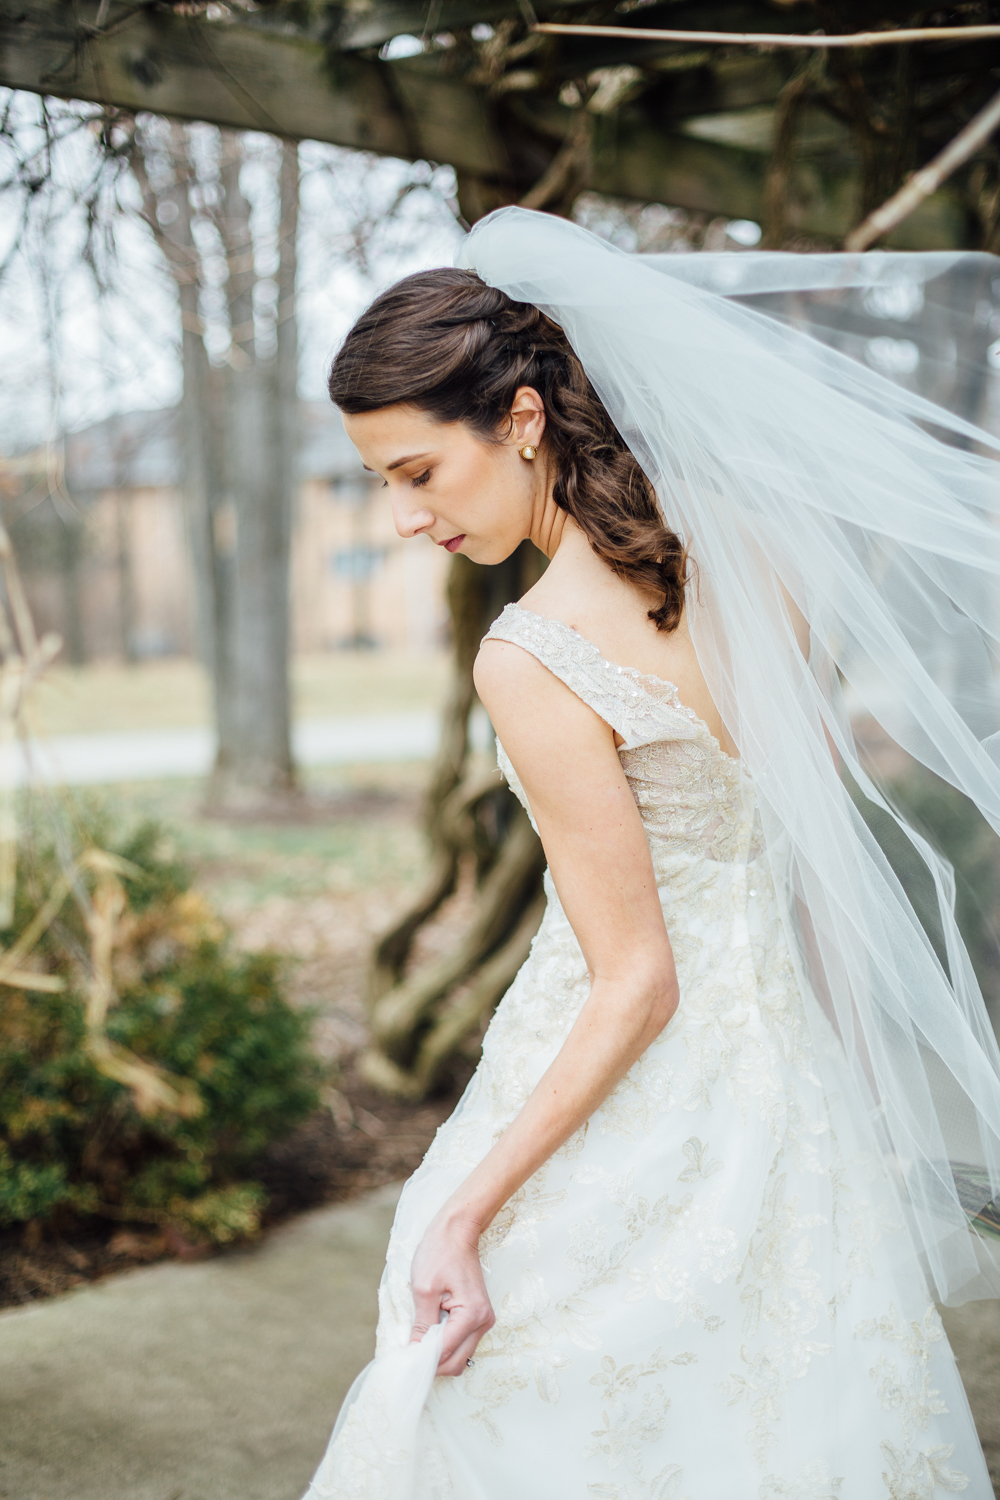 Fun, Intimate Spring Wedding by Corrie Mick Photography-24.jpg